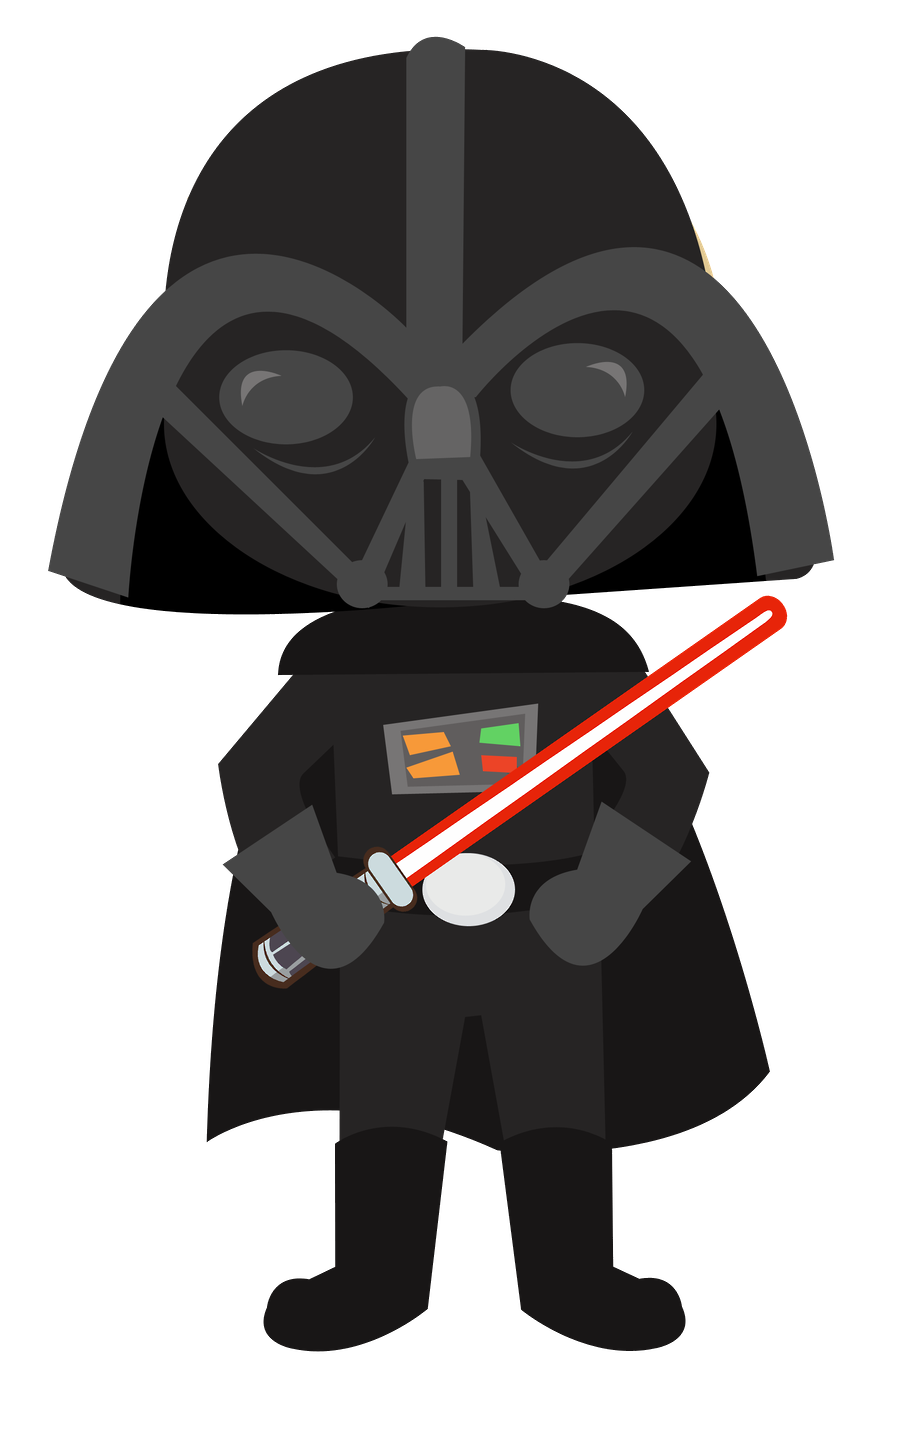 Starwars clipart. Star wars minus felt